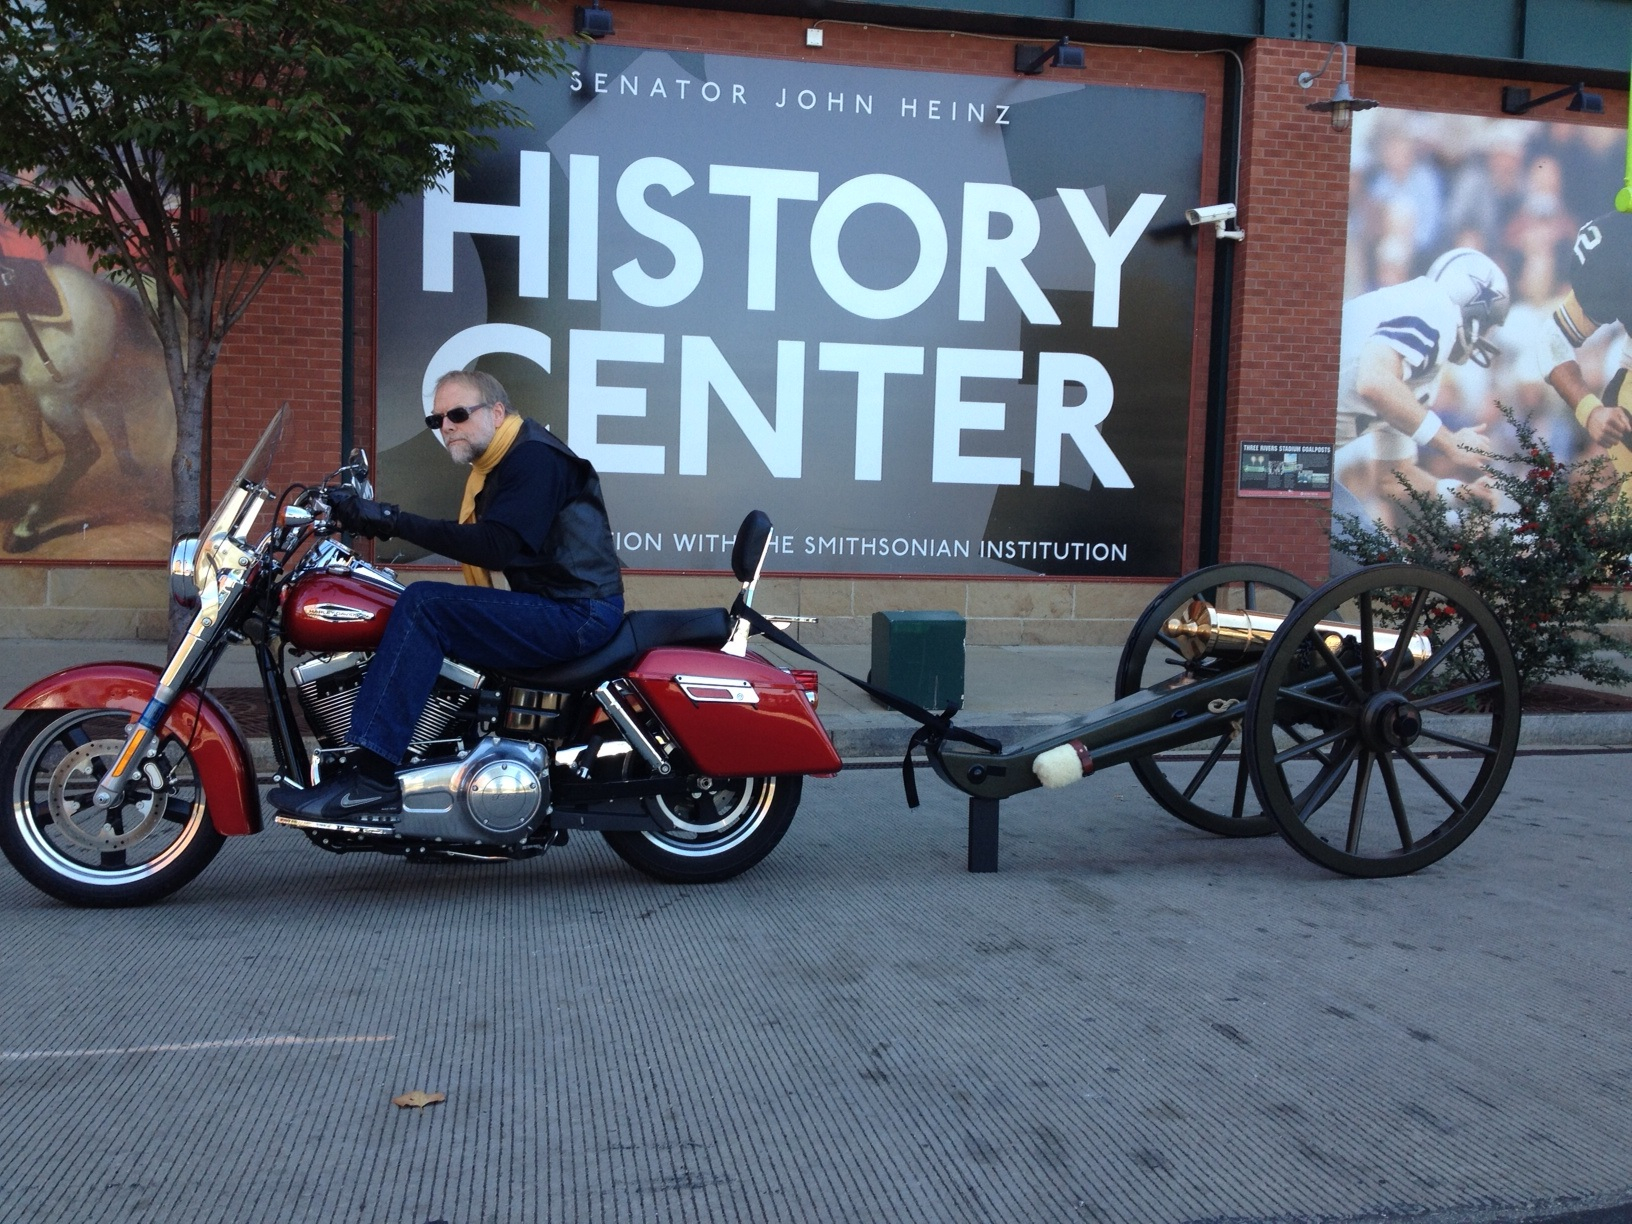 Andy and his motorcycle pulling his Civil War-era cannon.